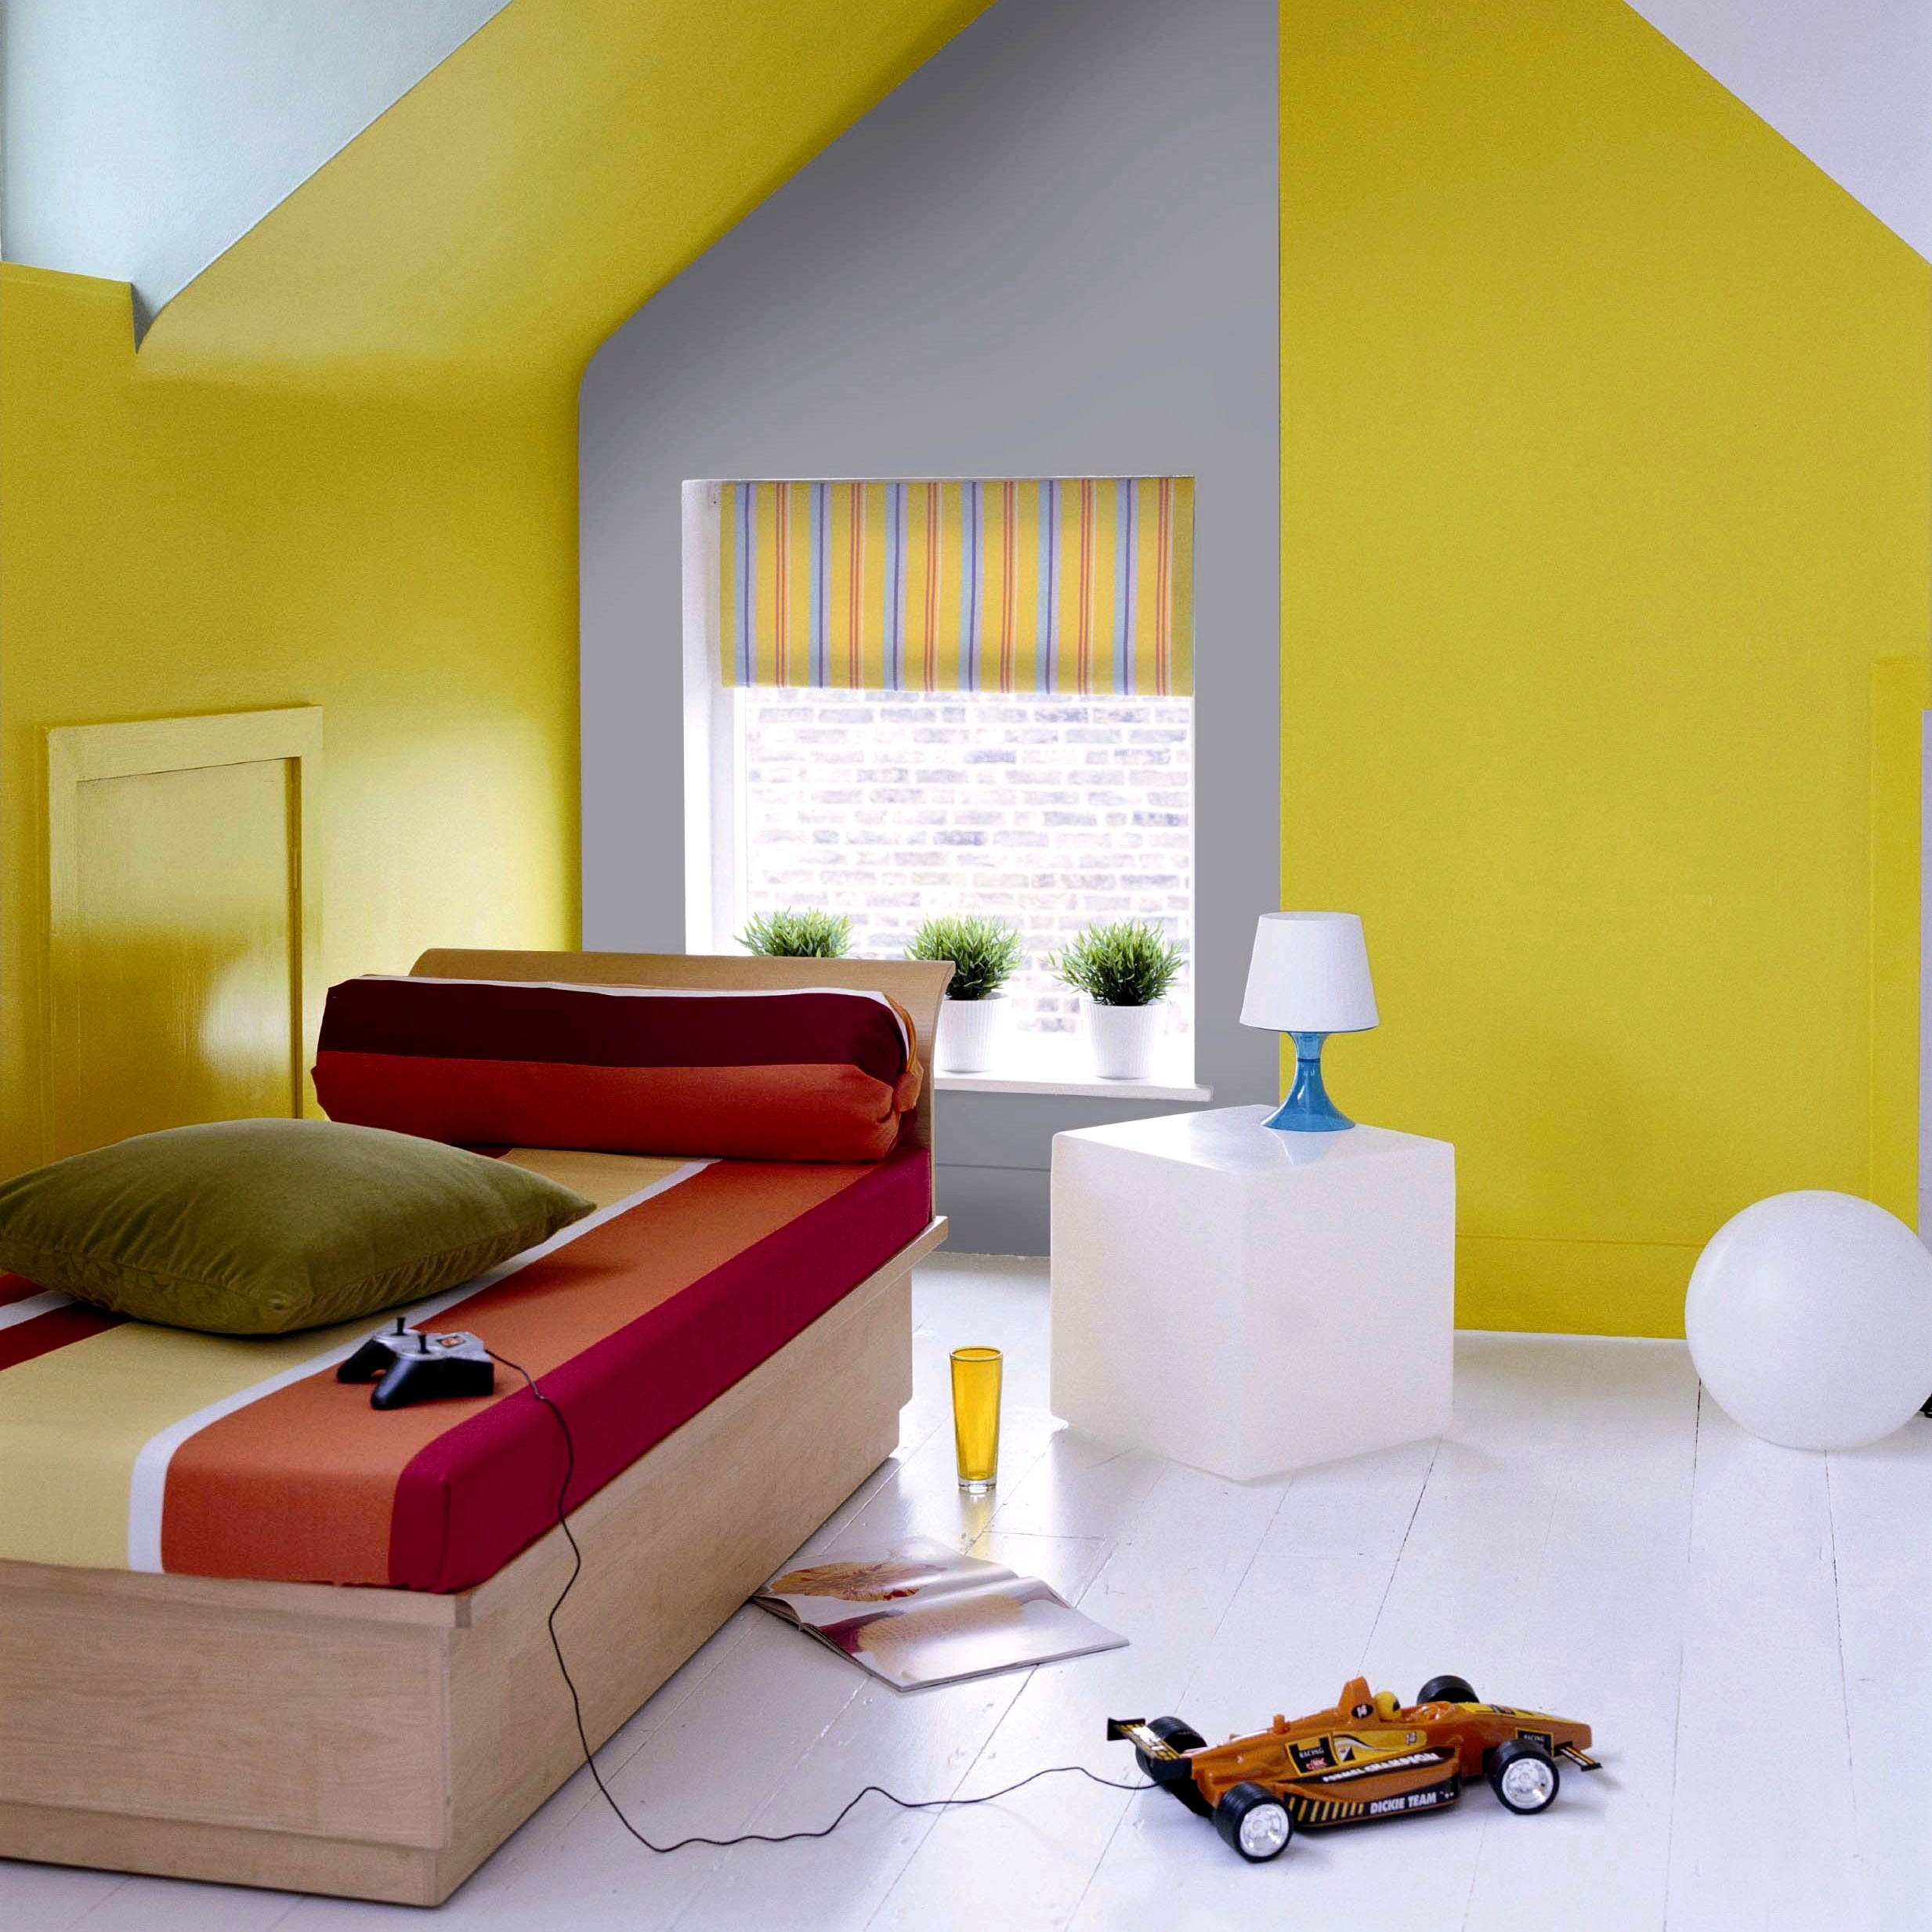 pour tre tendance optez pour une d co jaune. Black Bedroom Furniture Sets. Home Design Ideas